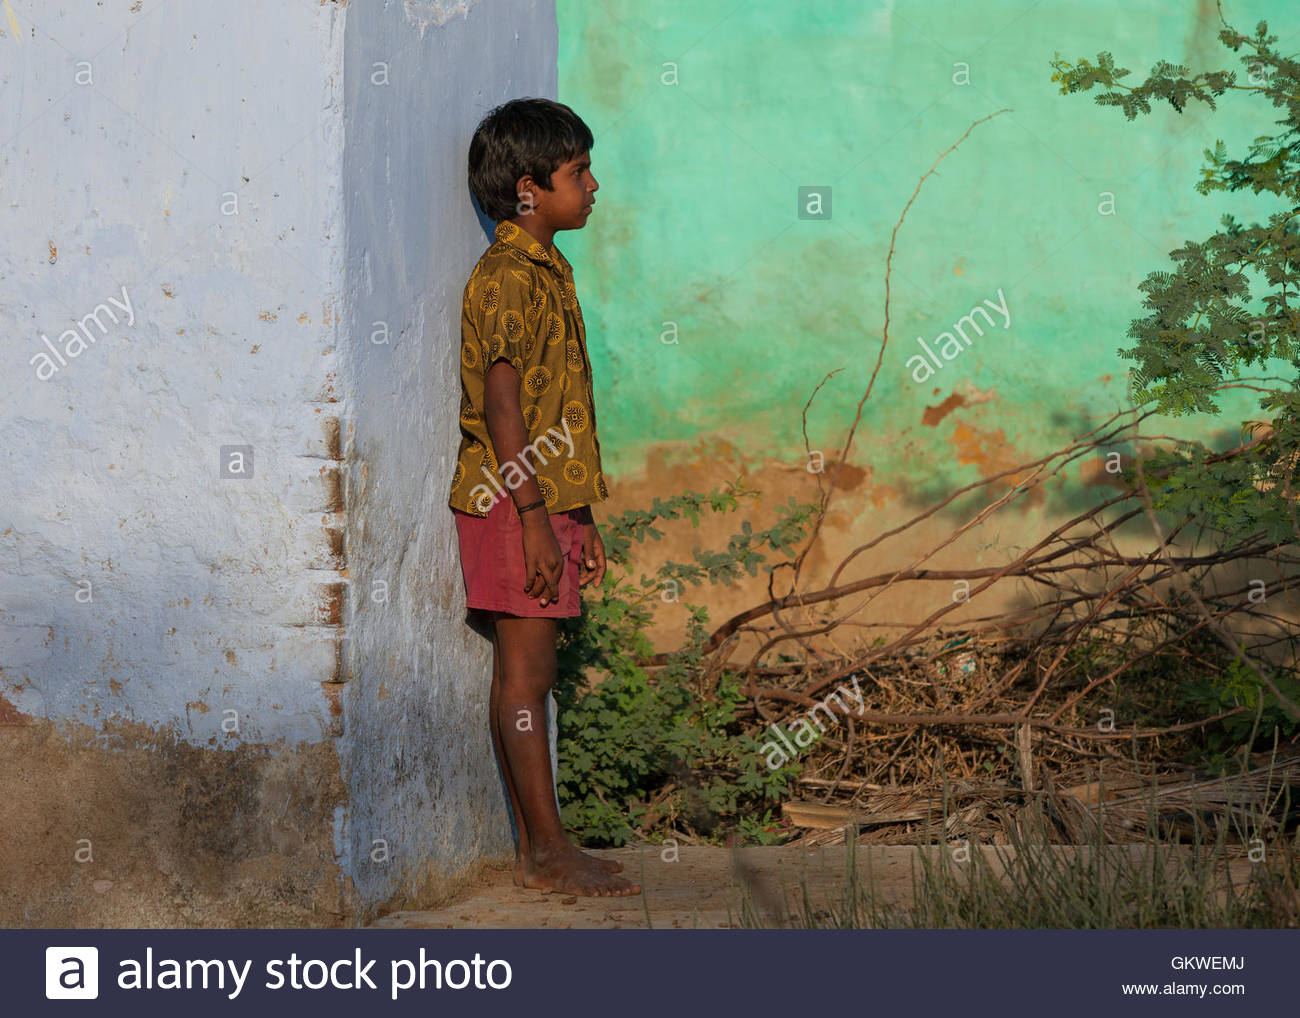 Young boy in Koonthankulam, Tamil Nadu,India, - Stock Image